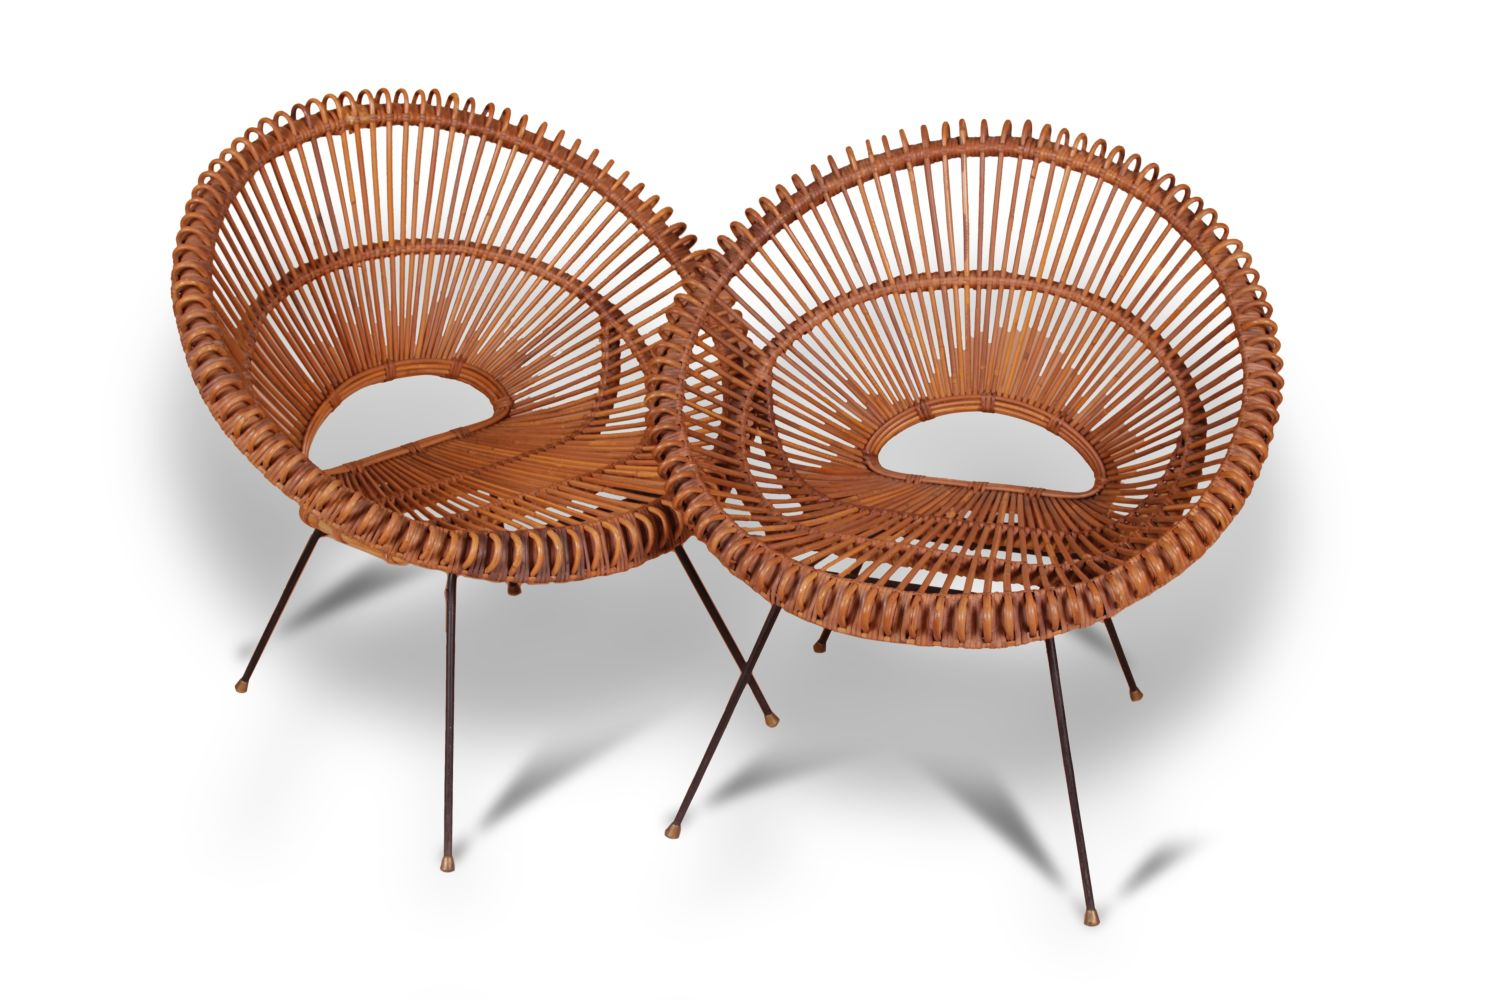 #131 by Janine Abraham and Dirk Jan Rol 2 Rattan Chairs | 2 Rattan Sessel Image